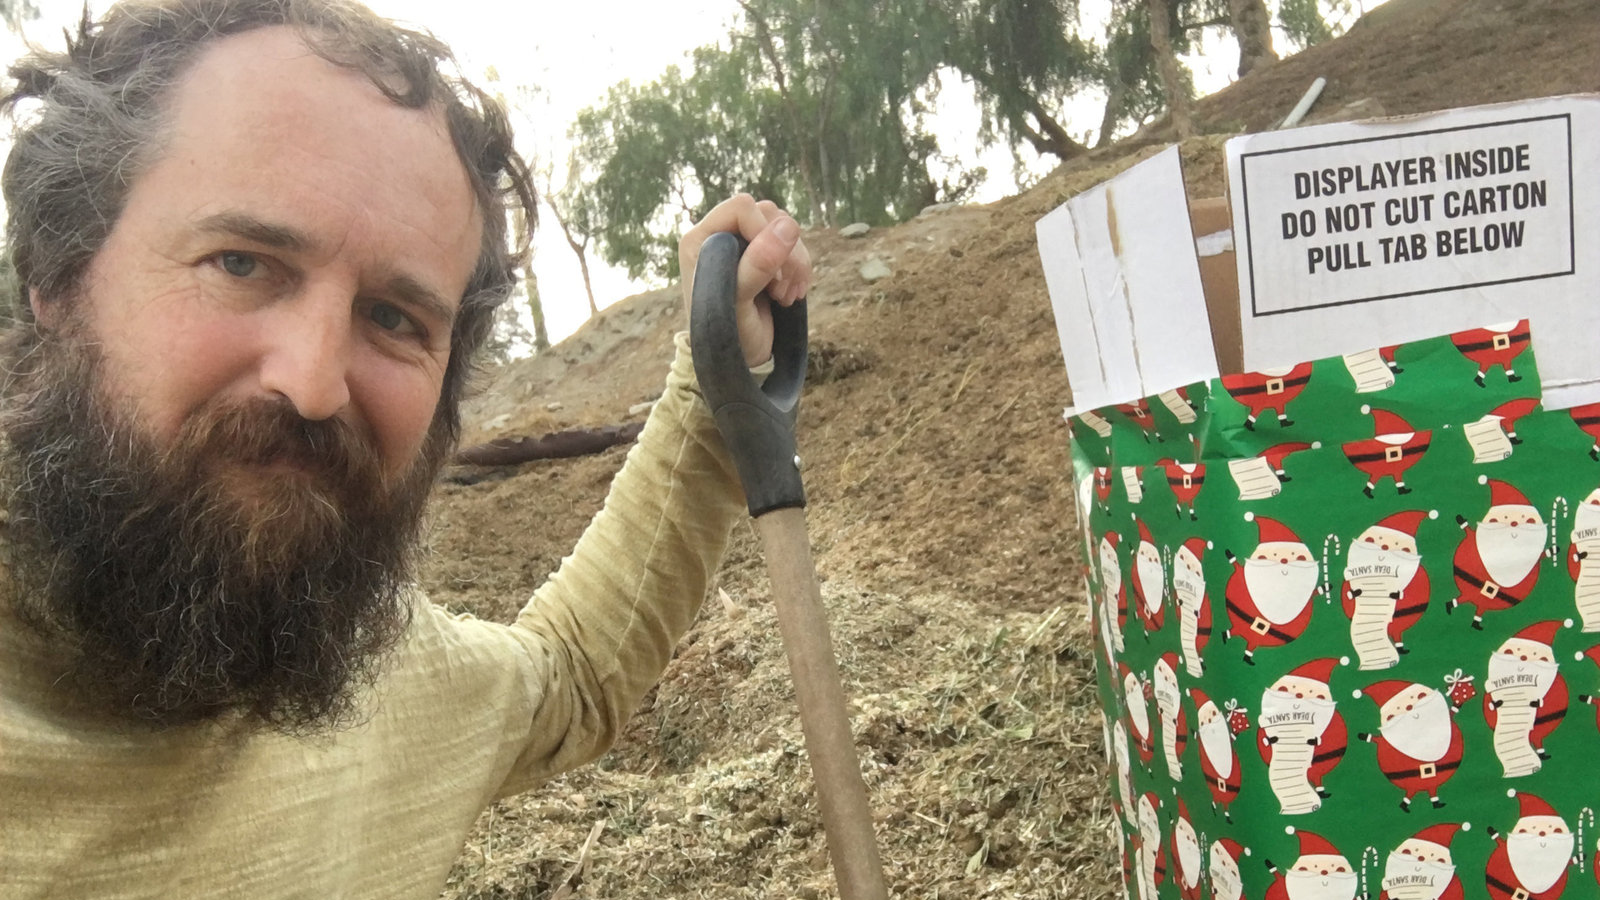 Robert Strong is seen next to a gift-wrapped box in this photo released by Robert Strong of Eagle Rock, California, on Dec. 25, 2017.